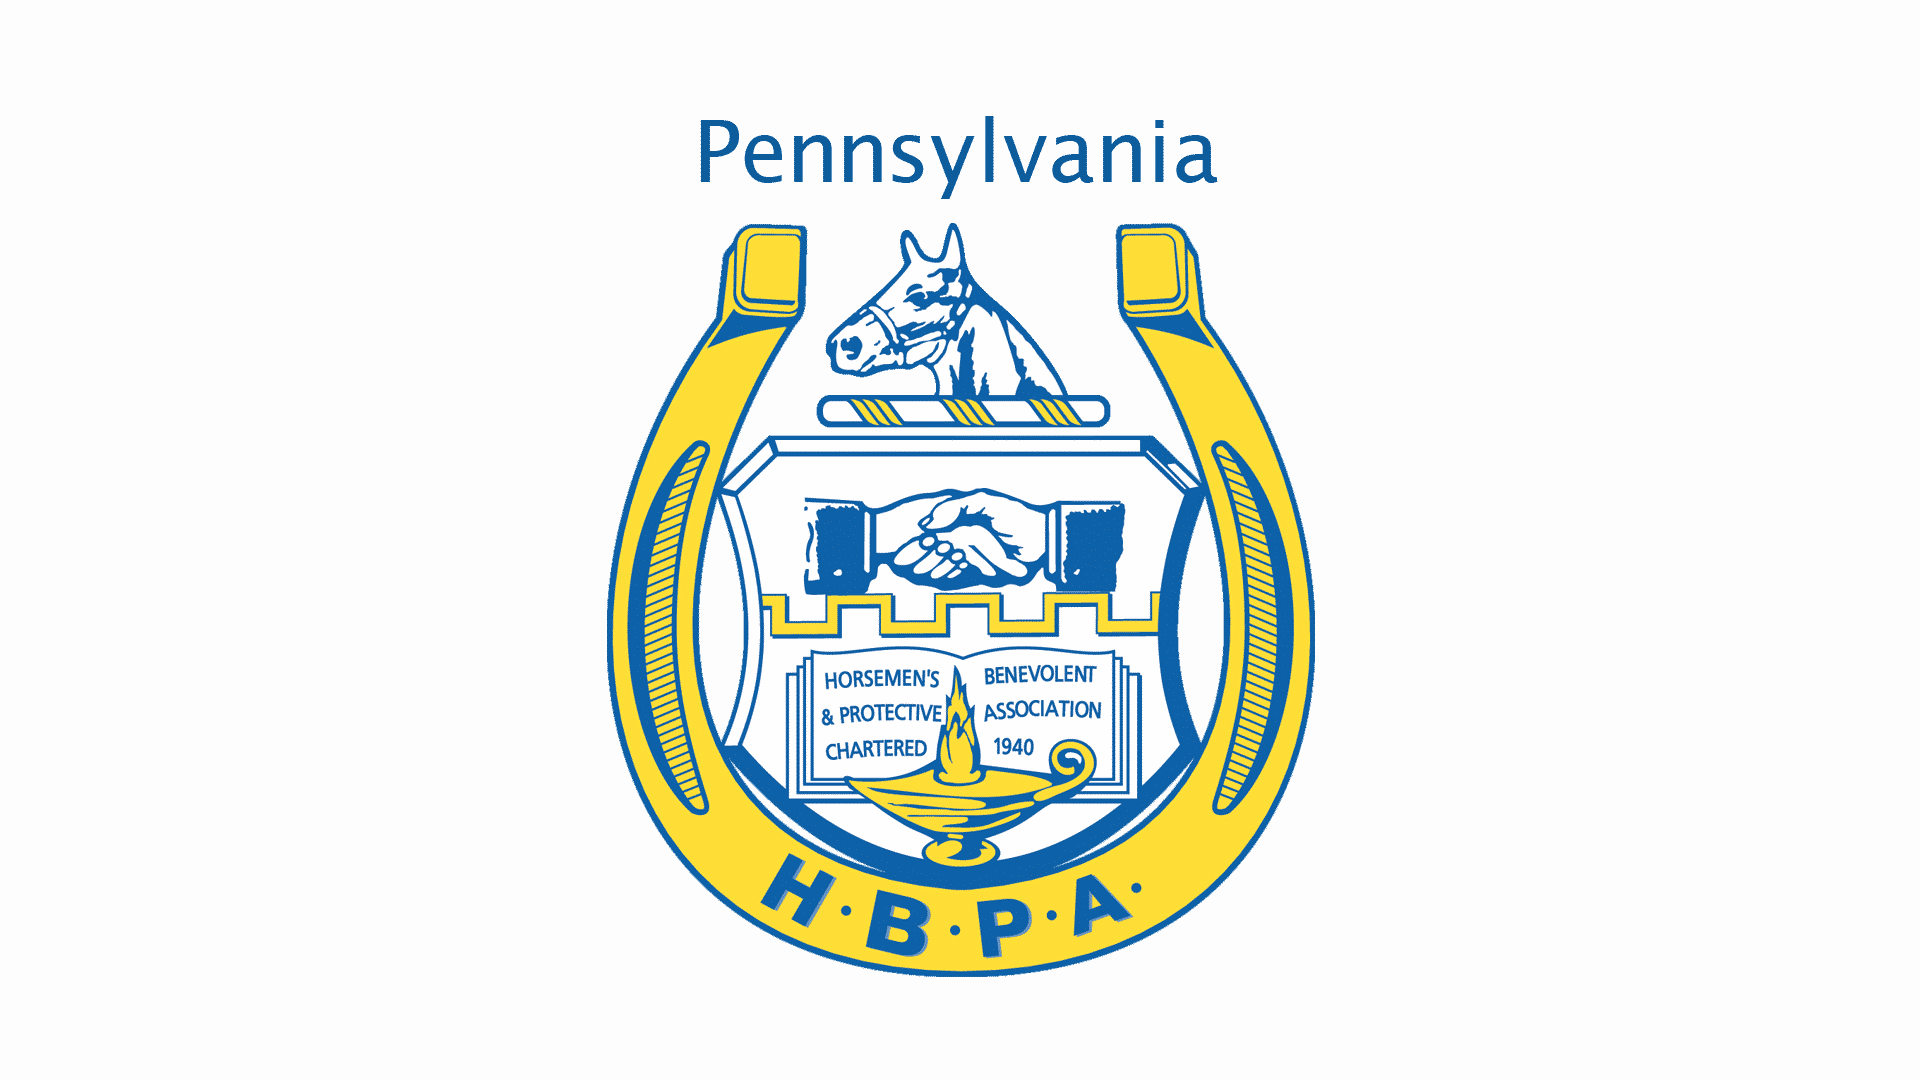 PAHBPA - Pennsylvania Horsemen's Benevolent and Protective Association